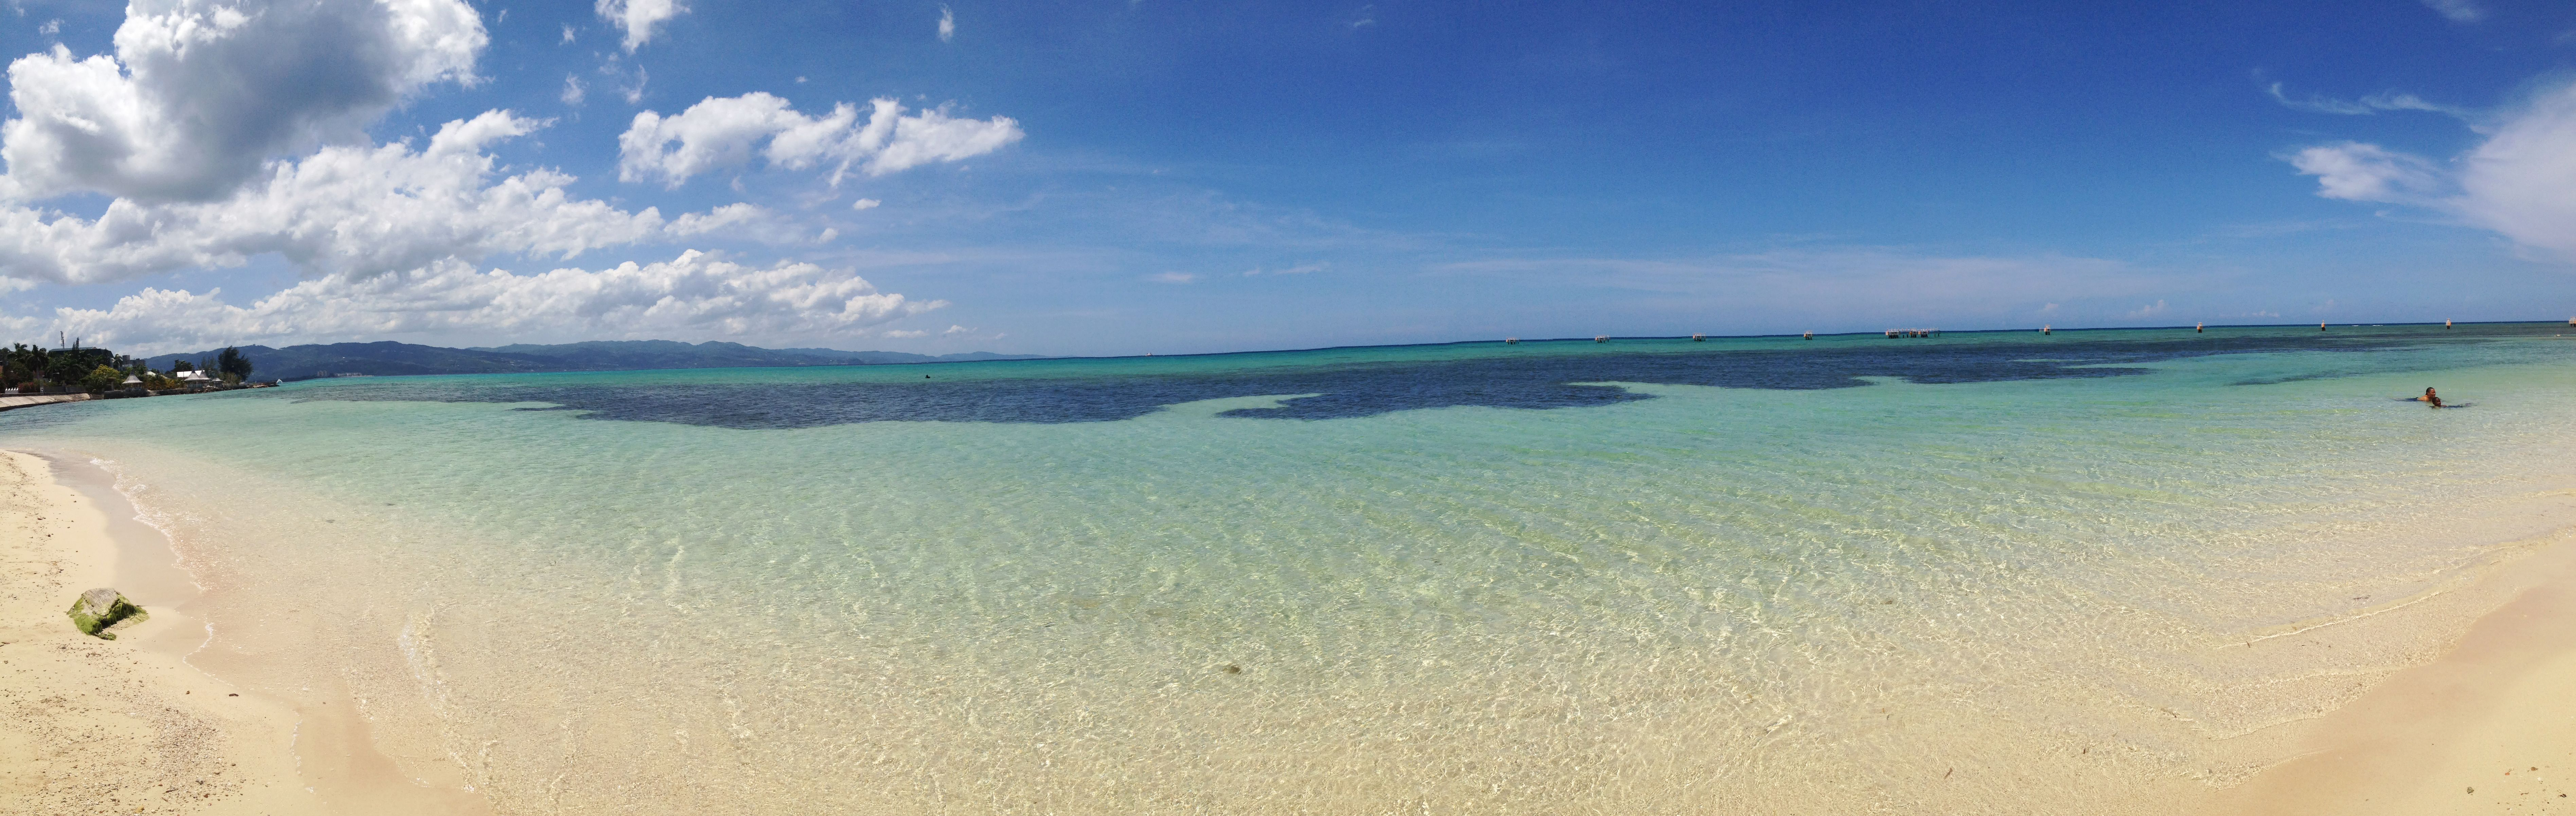 One of the beaches in Montego Bay, Jamaica